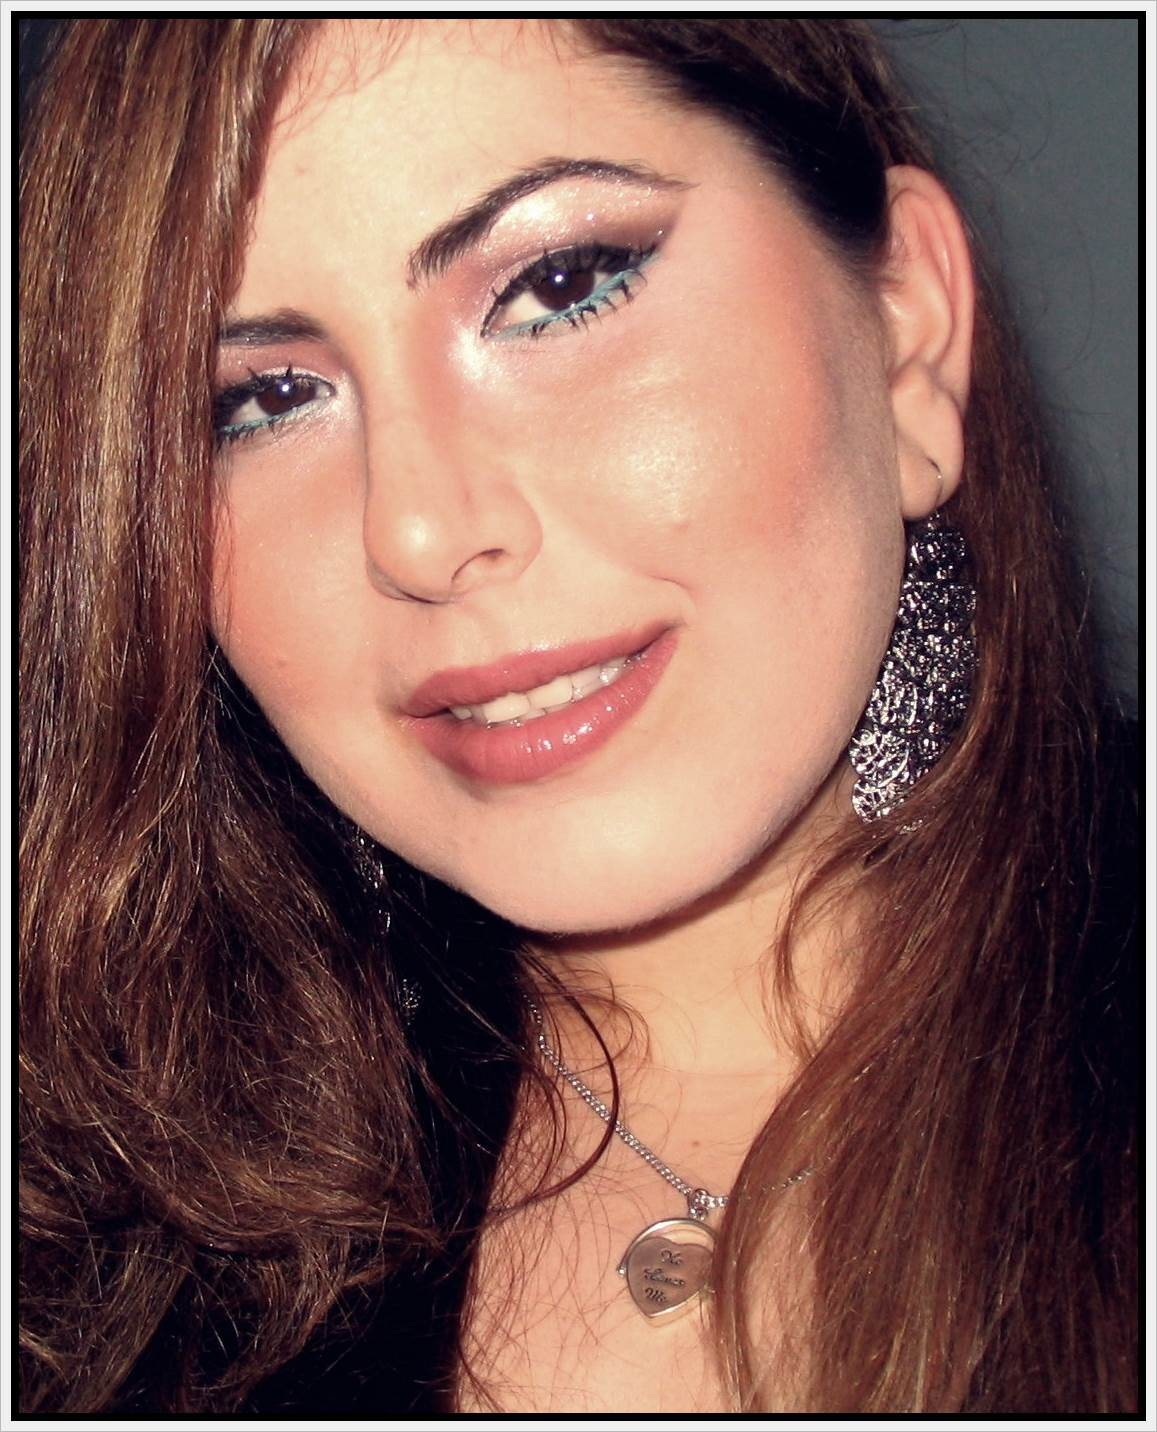 Limor Sharvit's biography & musical journey